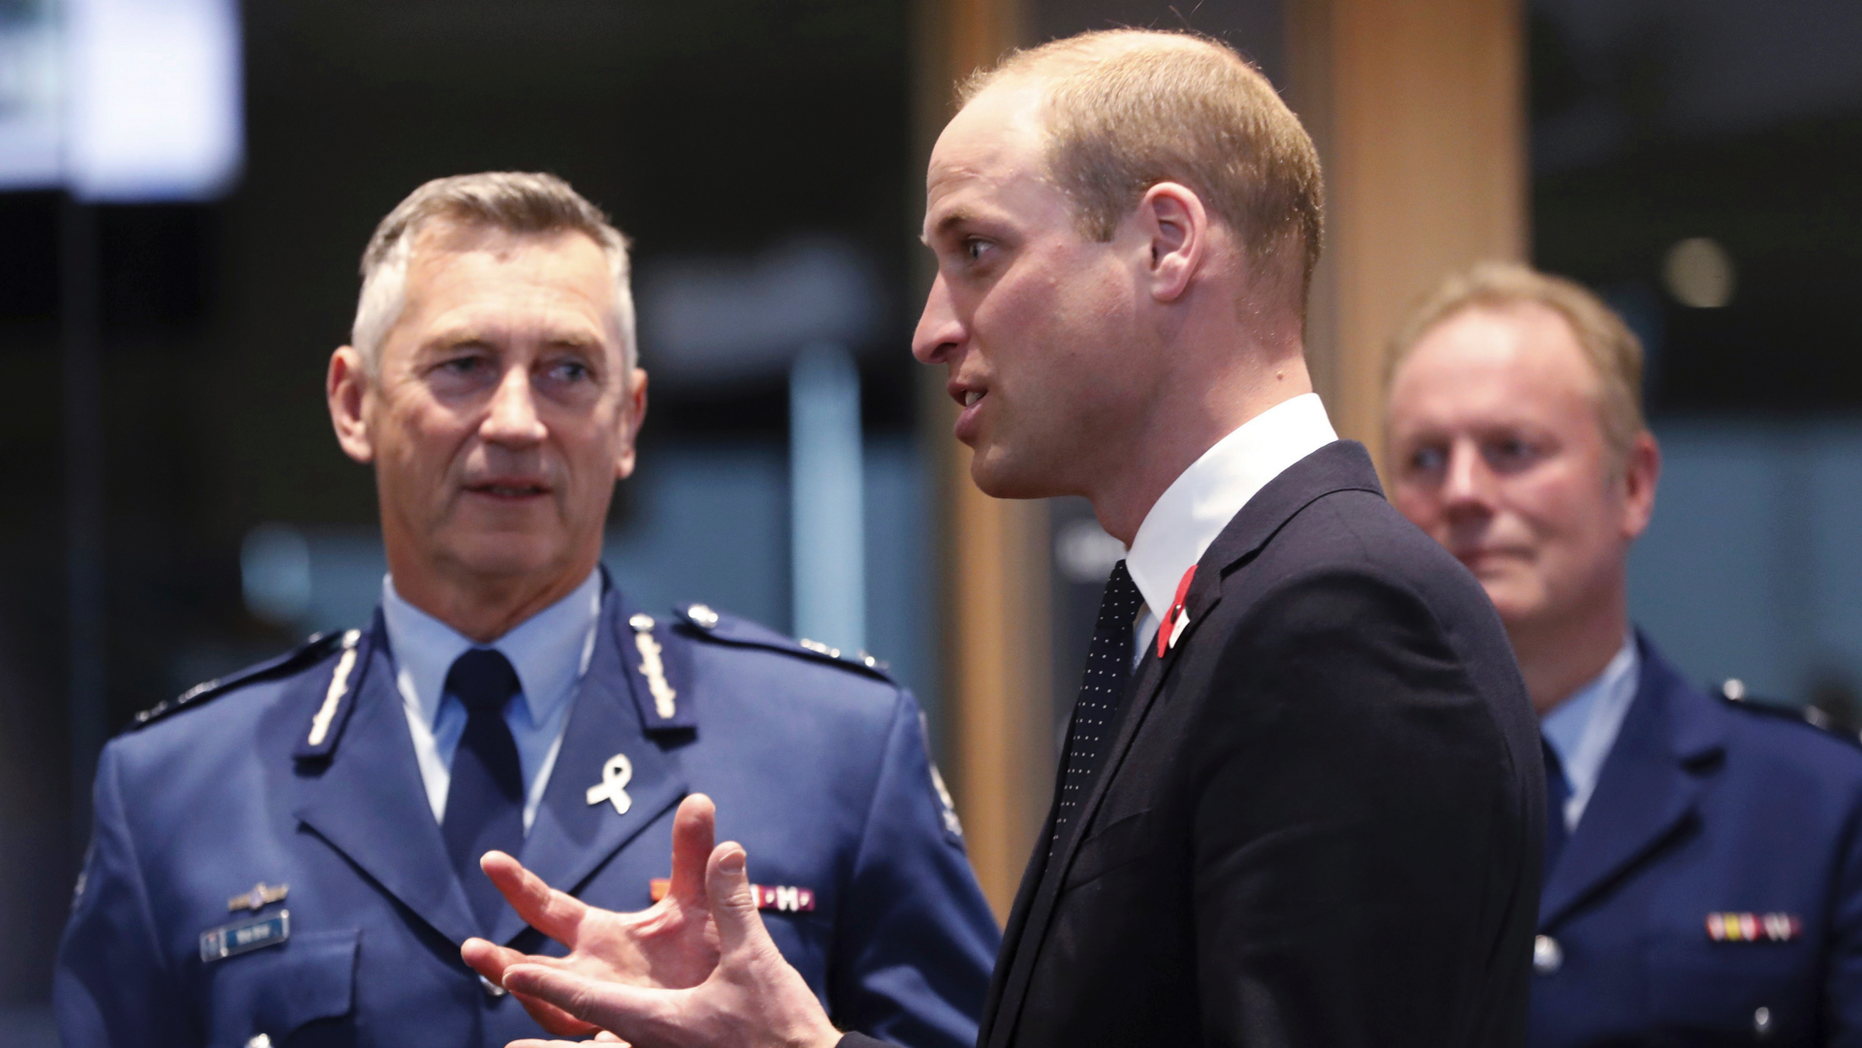 Britain's Prince William, center, meets with Police St. Johns ambulance staff during a visit to the Justice and Emergency Services Precinct in Christchurch, New Zealand, Thursday, April 25, 2019. Prince William is on a two-day visit to New Zealand to take part in ANZAC ceremonies and visit the two mosques where a gunman killed 50 people on March 15. (Rosa Woods/Pool Photo via AP)